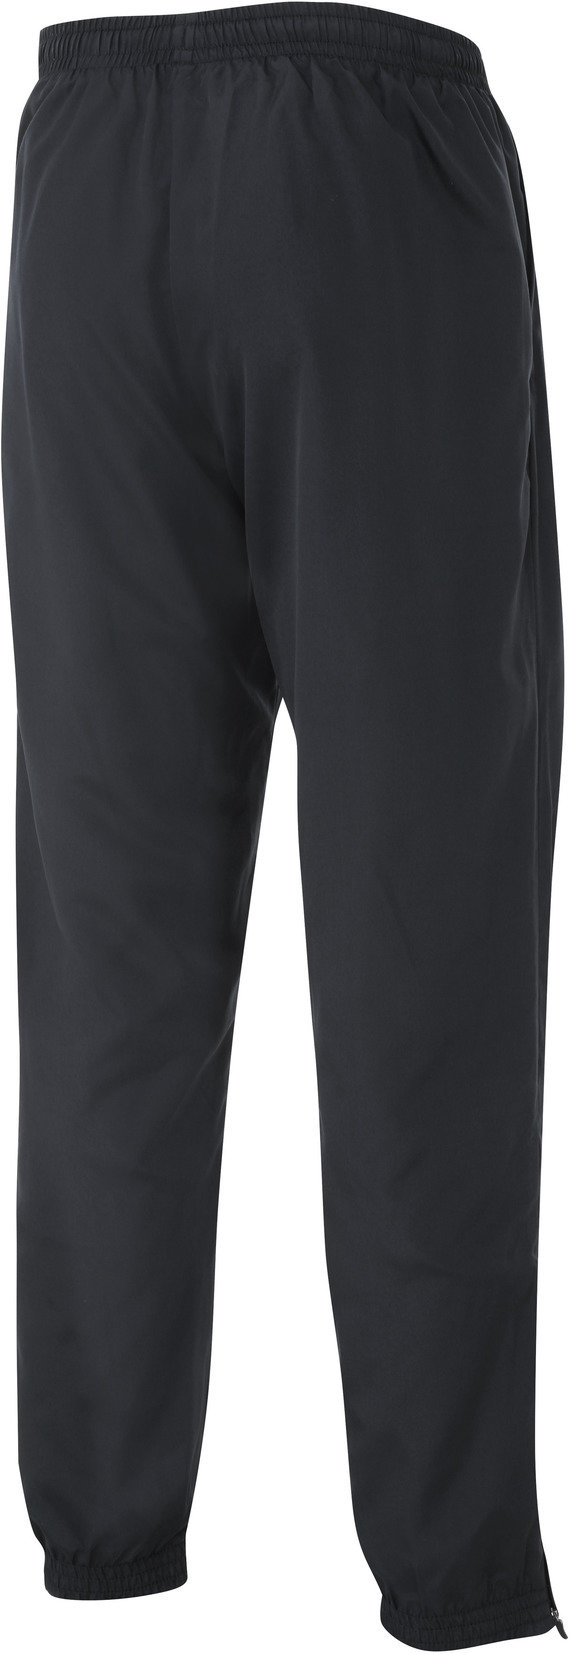 TRAINING WOVEN PANT